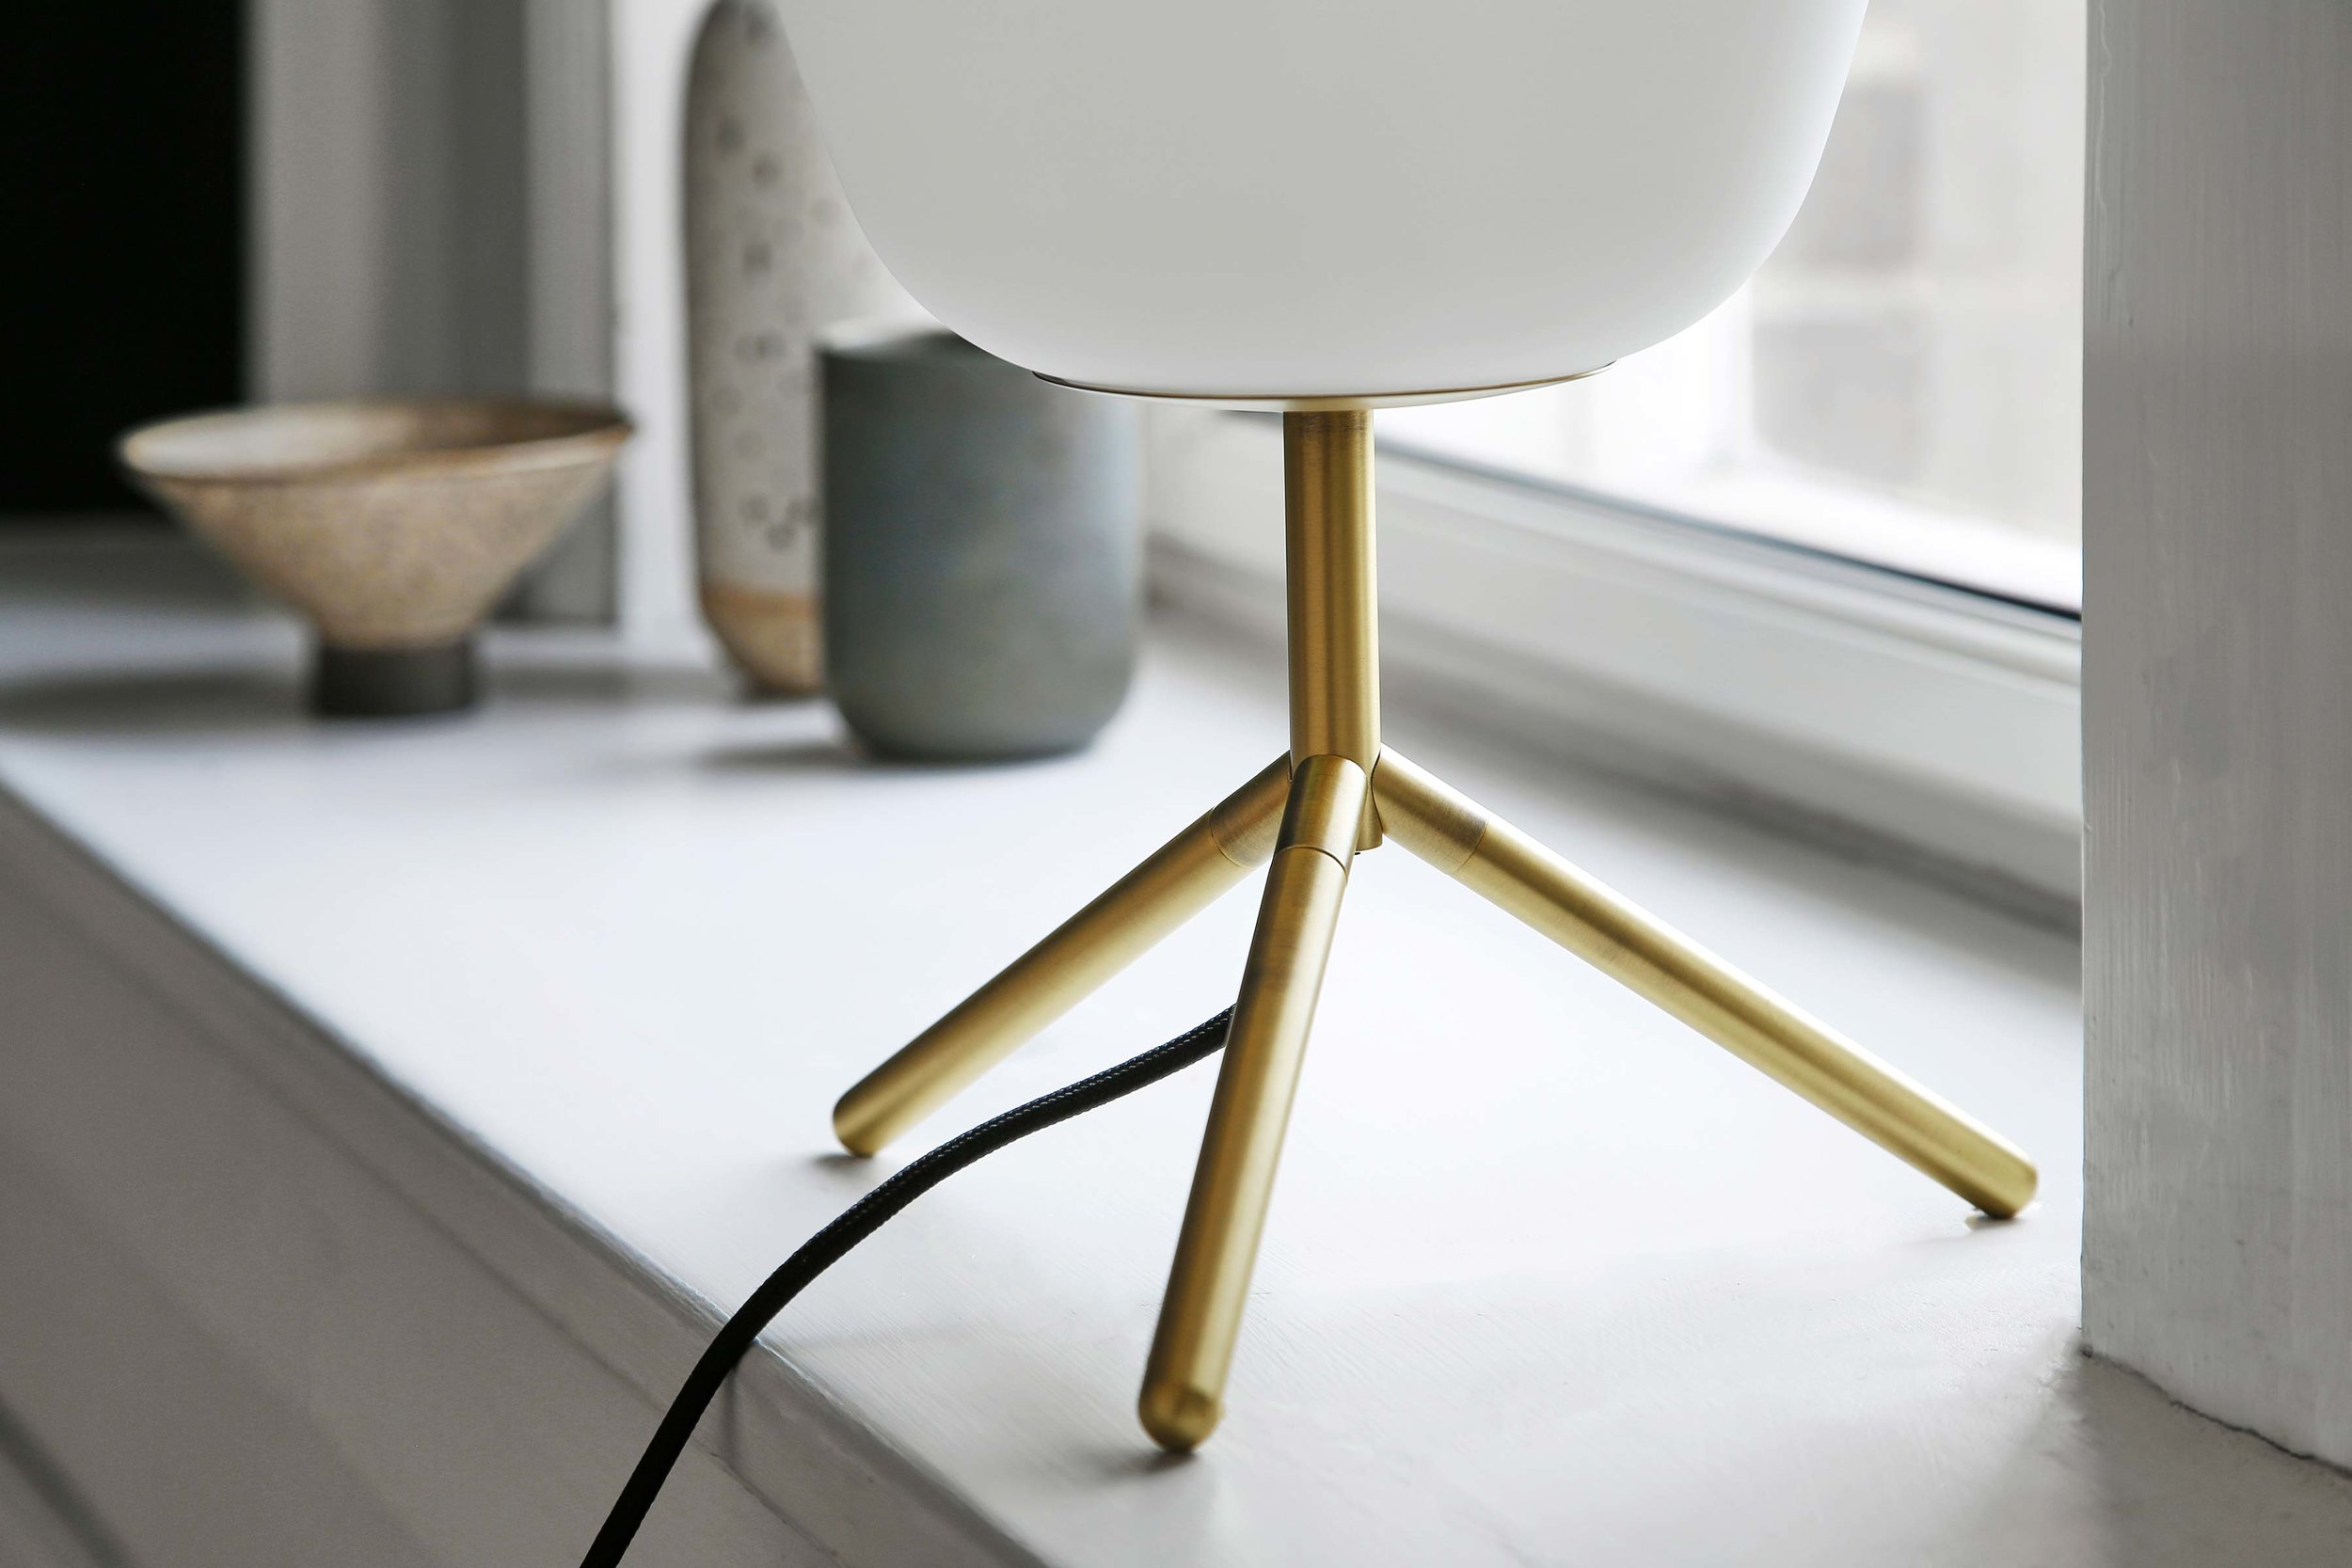 Silk-table-lamp-opal-white-glass-antique-brass---lifestyle-closeup-Teglgårdsvej-2577_V1.jpg